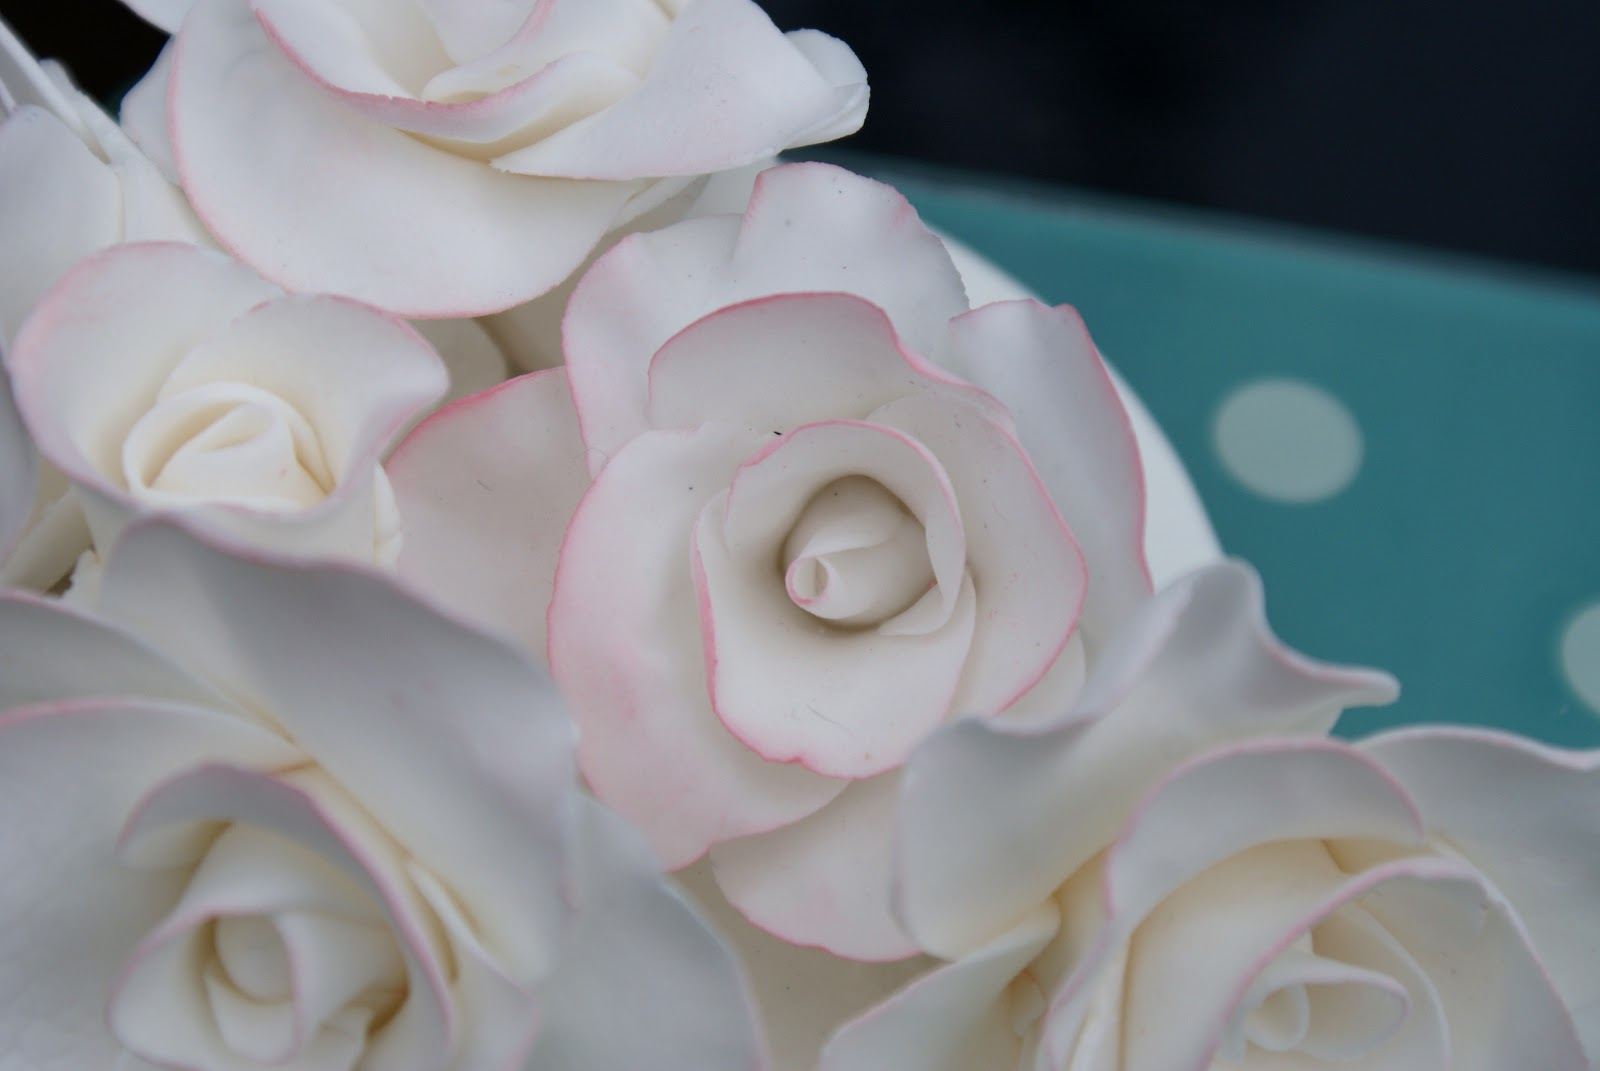 How To Make Sugar Roses Baking Recipes And Tutorials The Pink Whisk